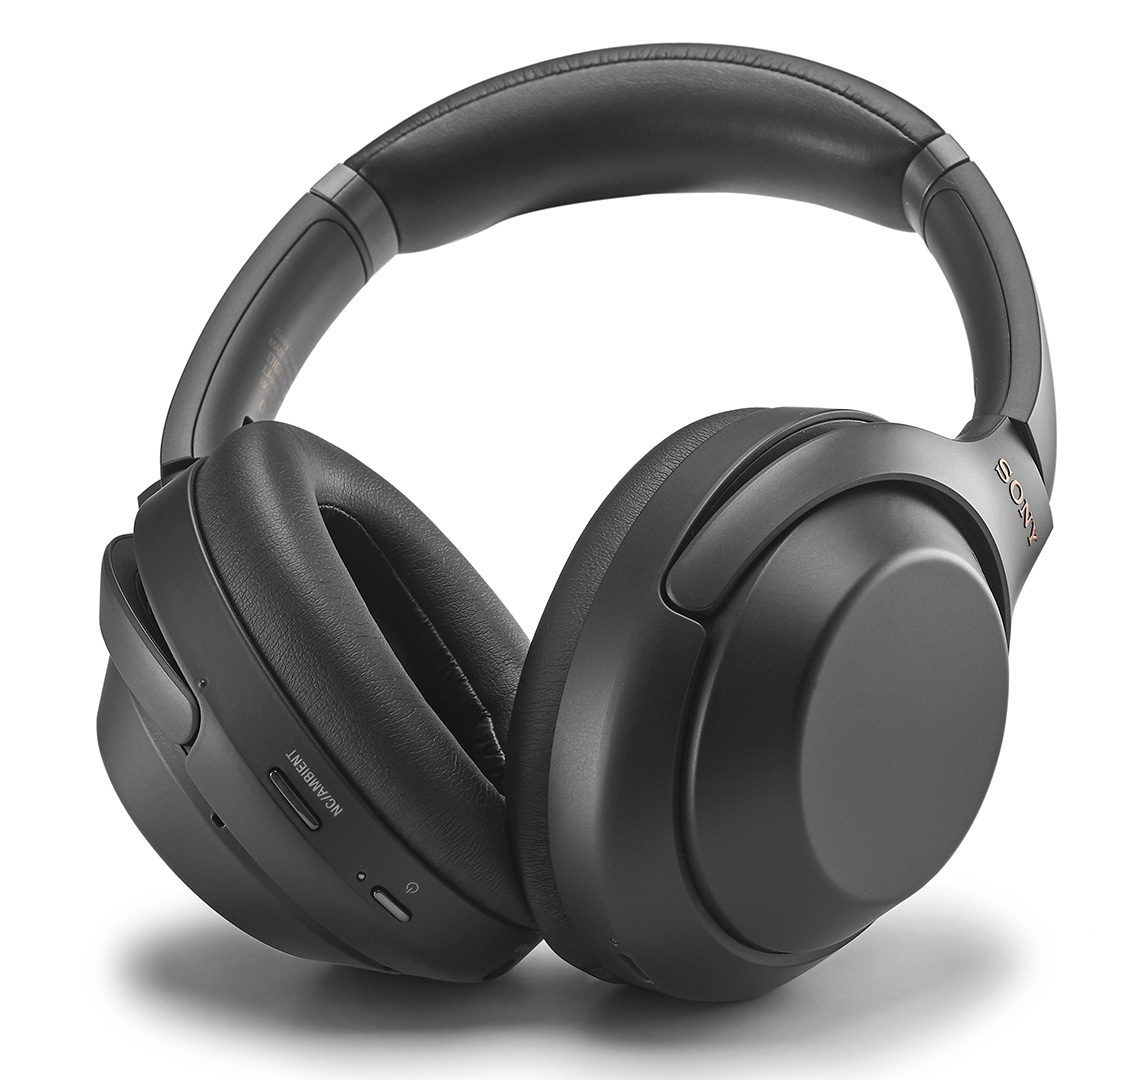 Sony - Casque à réduction de bruit sans fil WH1000XM3